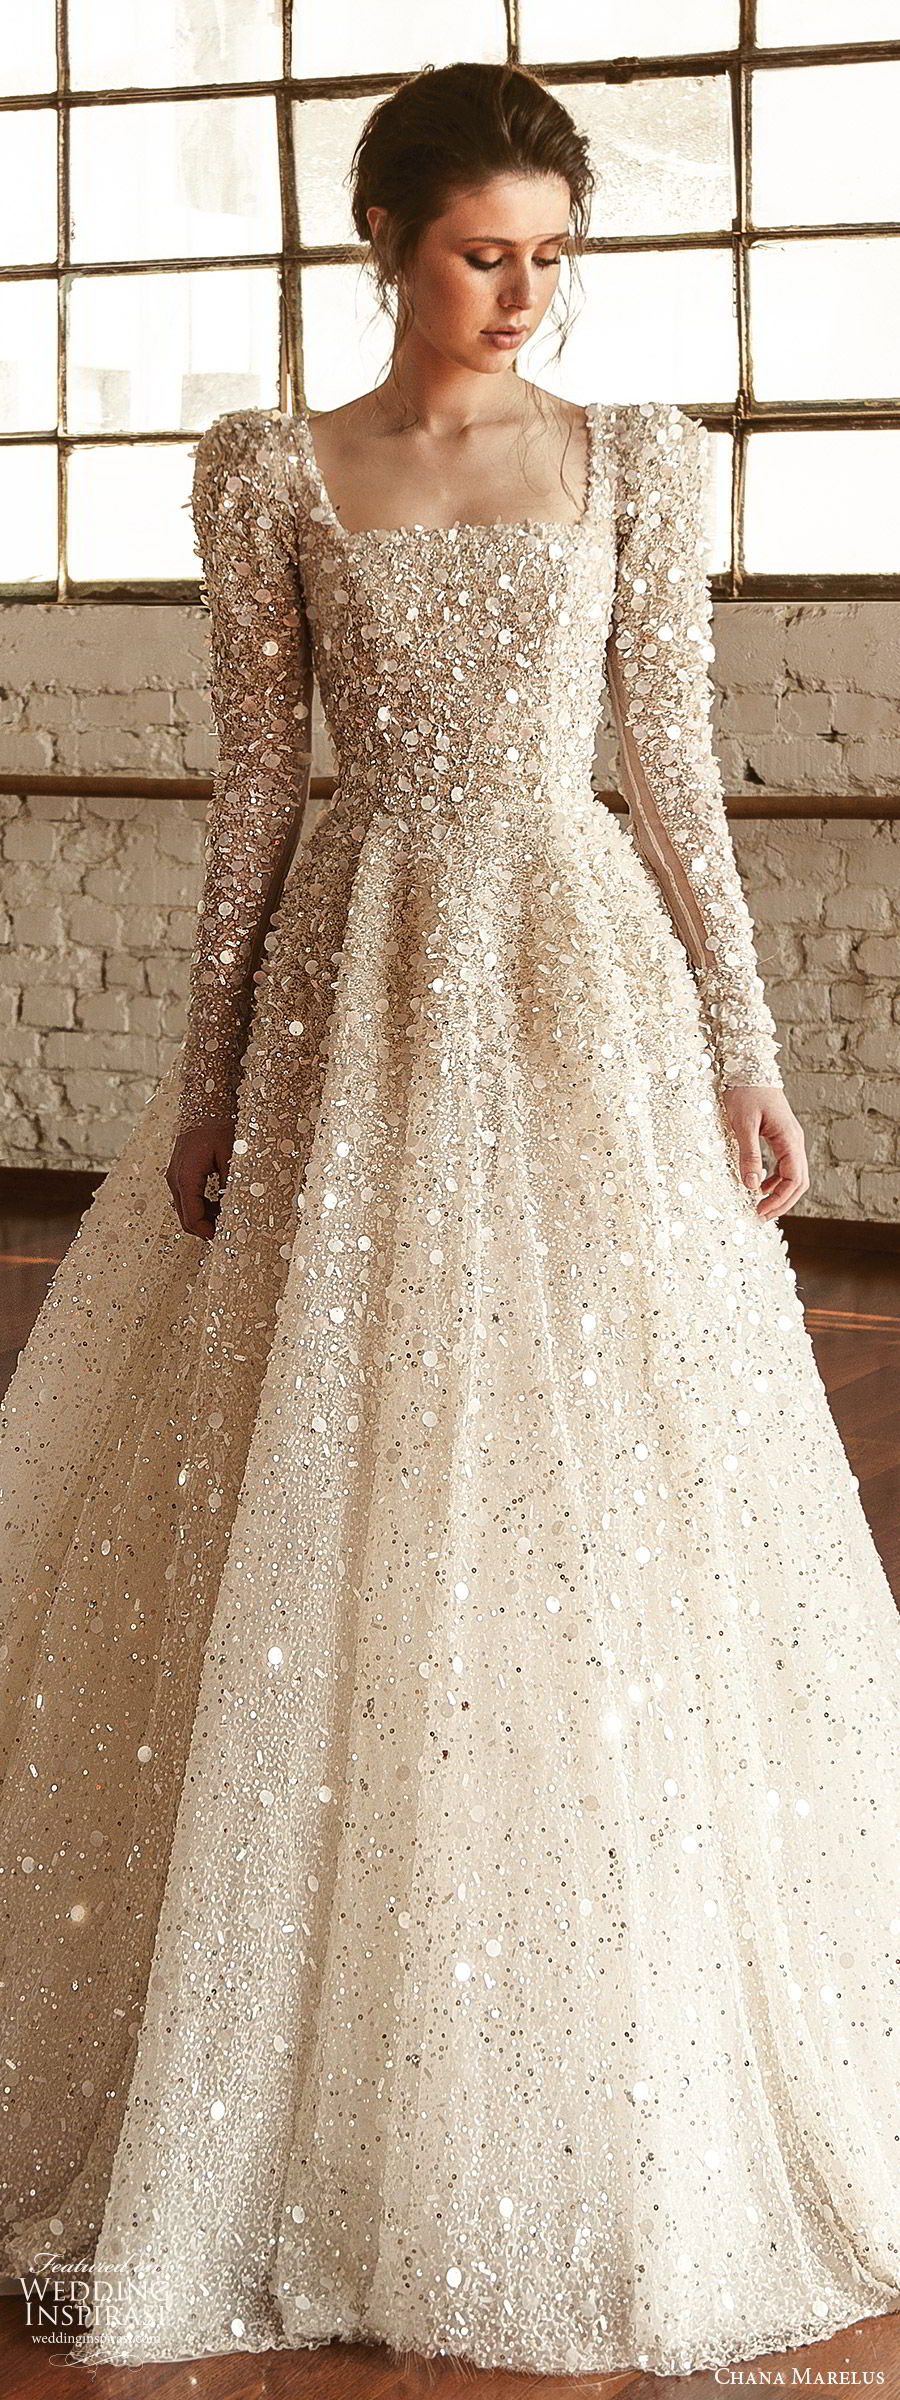 chana marelus fall 2019 bridal long puff sleeves square straigh across neckline fully embellished a line ball gown wedding dress (1) glitzy princess romantic cathedral train lv